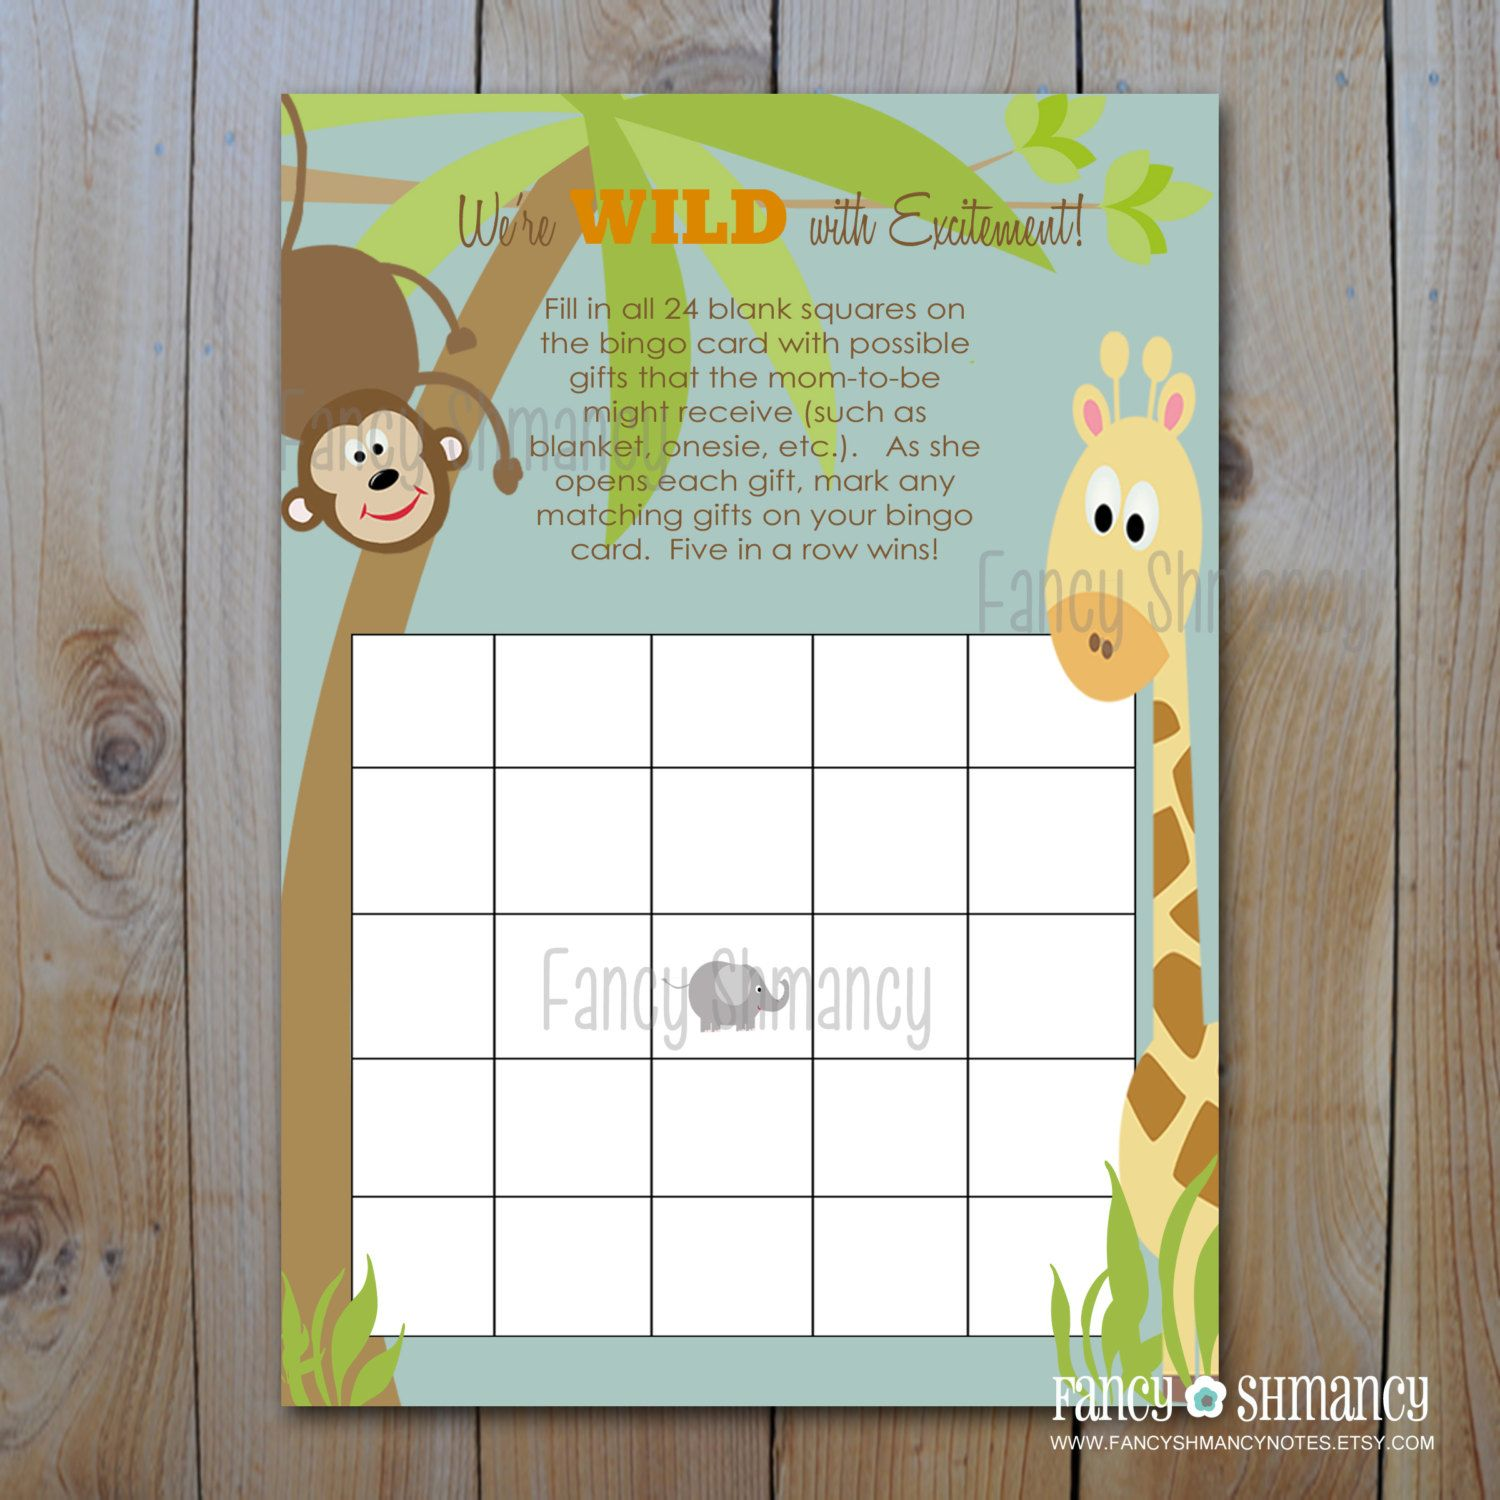 Baby shower bingo game cards instant download jungle theme baby shower bingo game cards instant download jungle theme printable baby shower game solutioingenieria Gallery